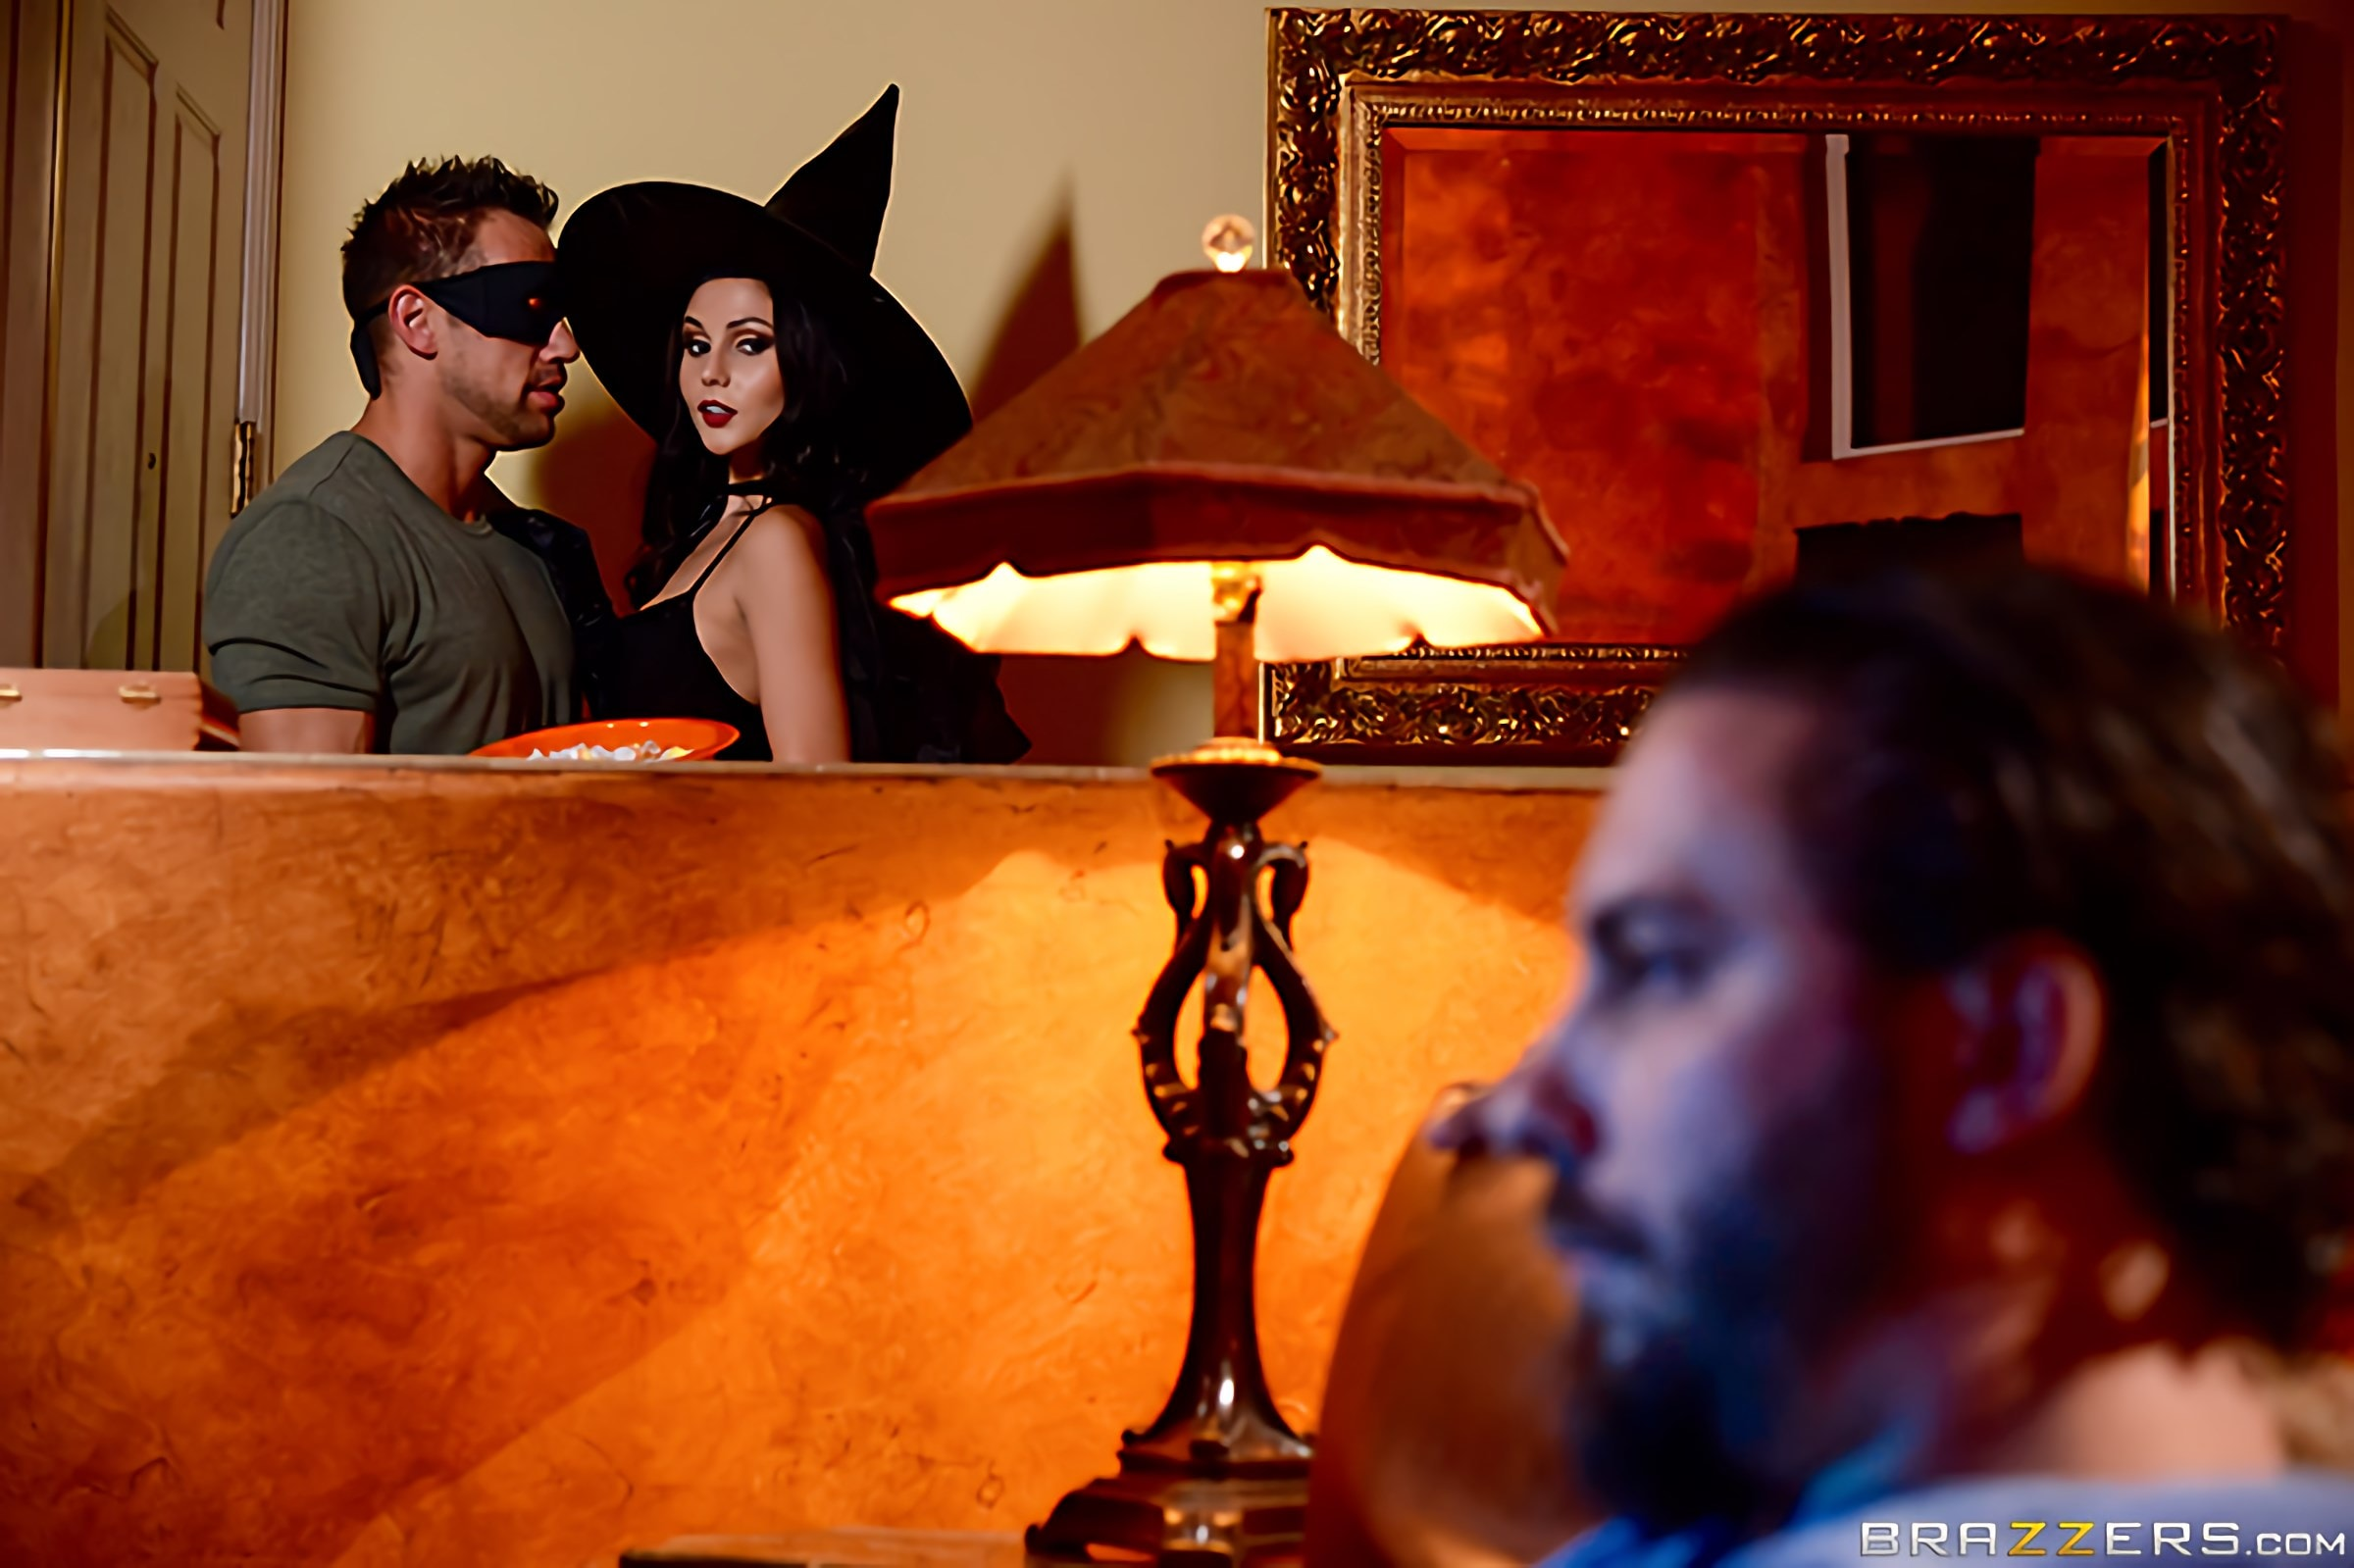 Brazzers 'Dick Or Treat' starring Ariana Marie (Photo 12)